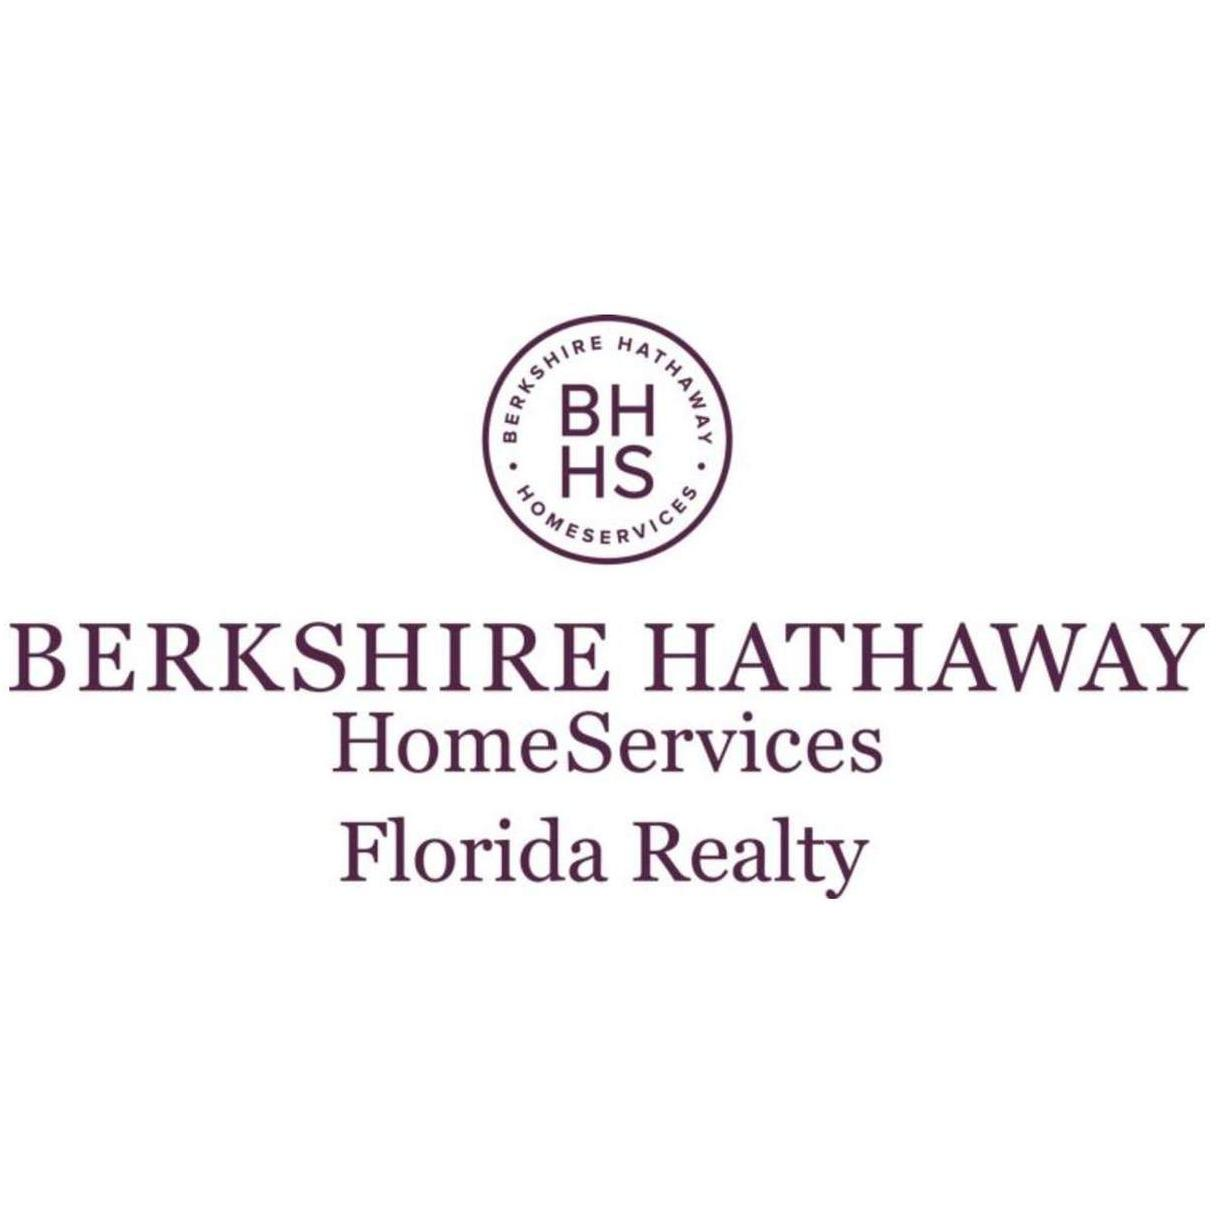 Stacy Gizzi - Berkshire Hathaway HomeServices Florida Realty